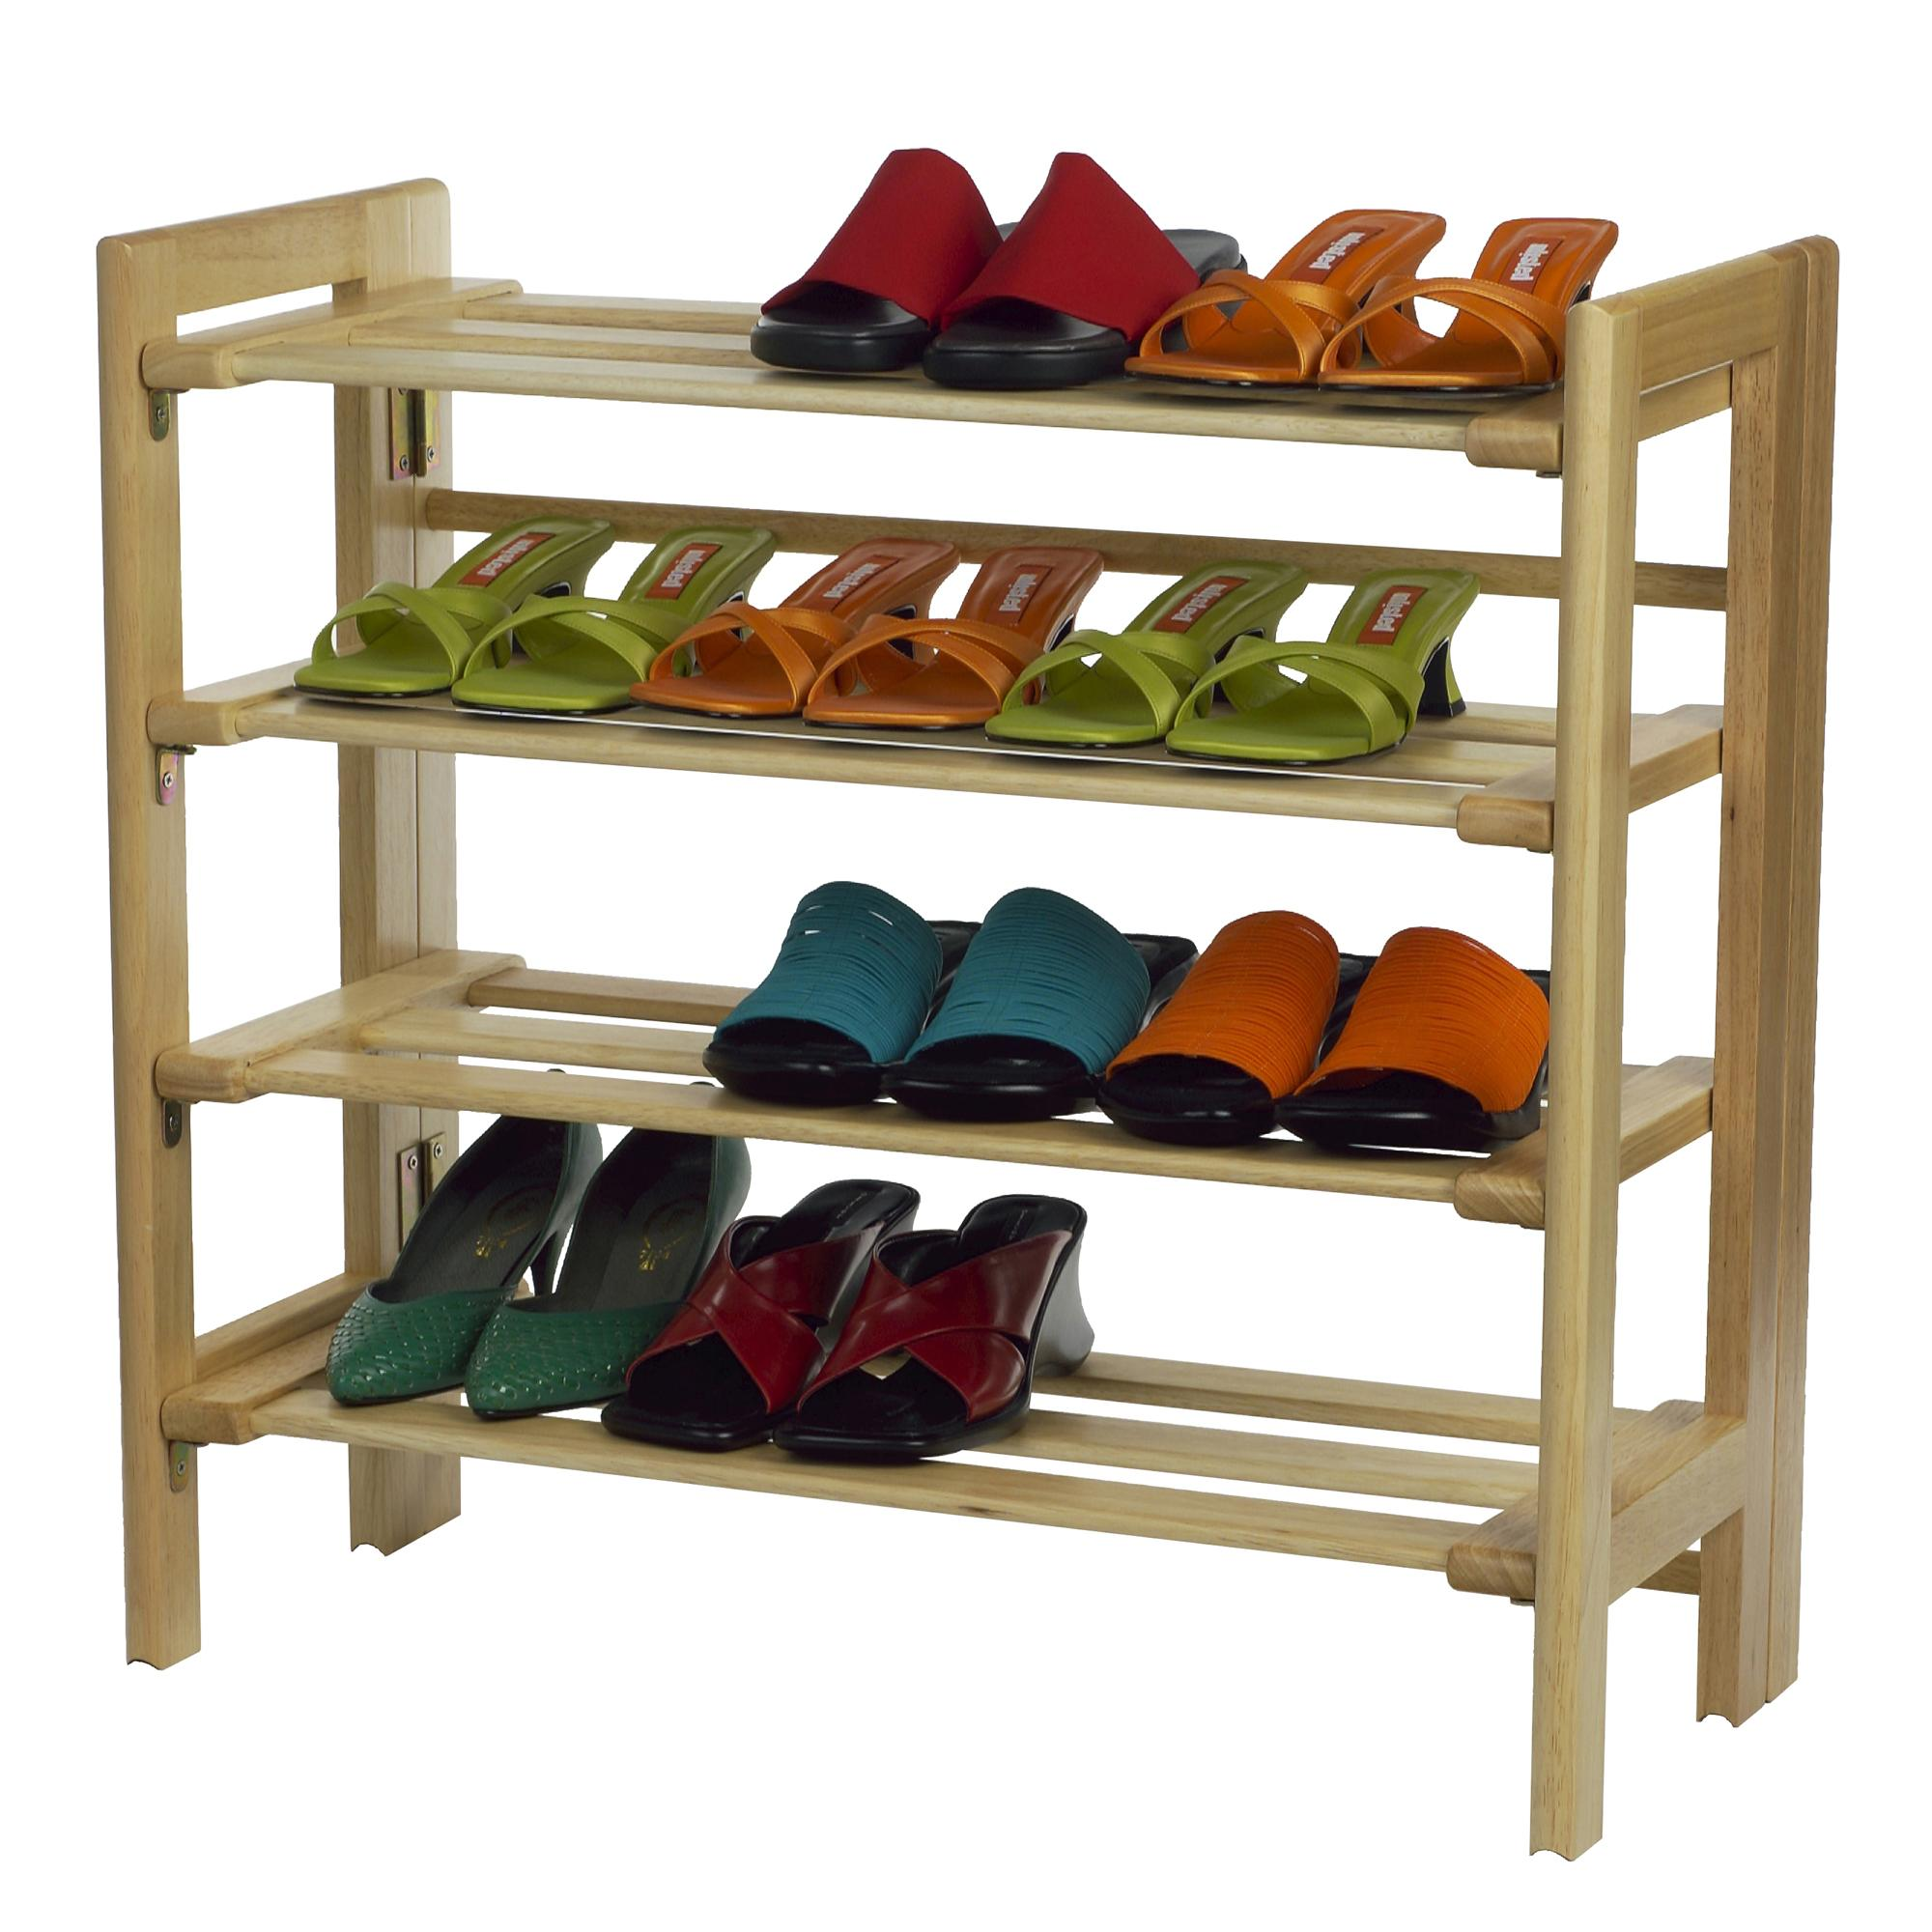 Shoe Organizer Amazoncom Winsome Wood Foldable 4 Tier Shoe Rack Natural